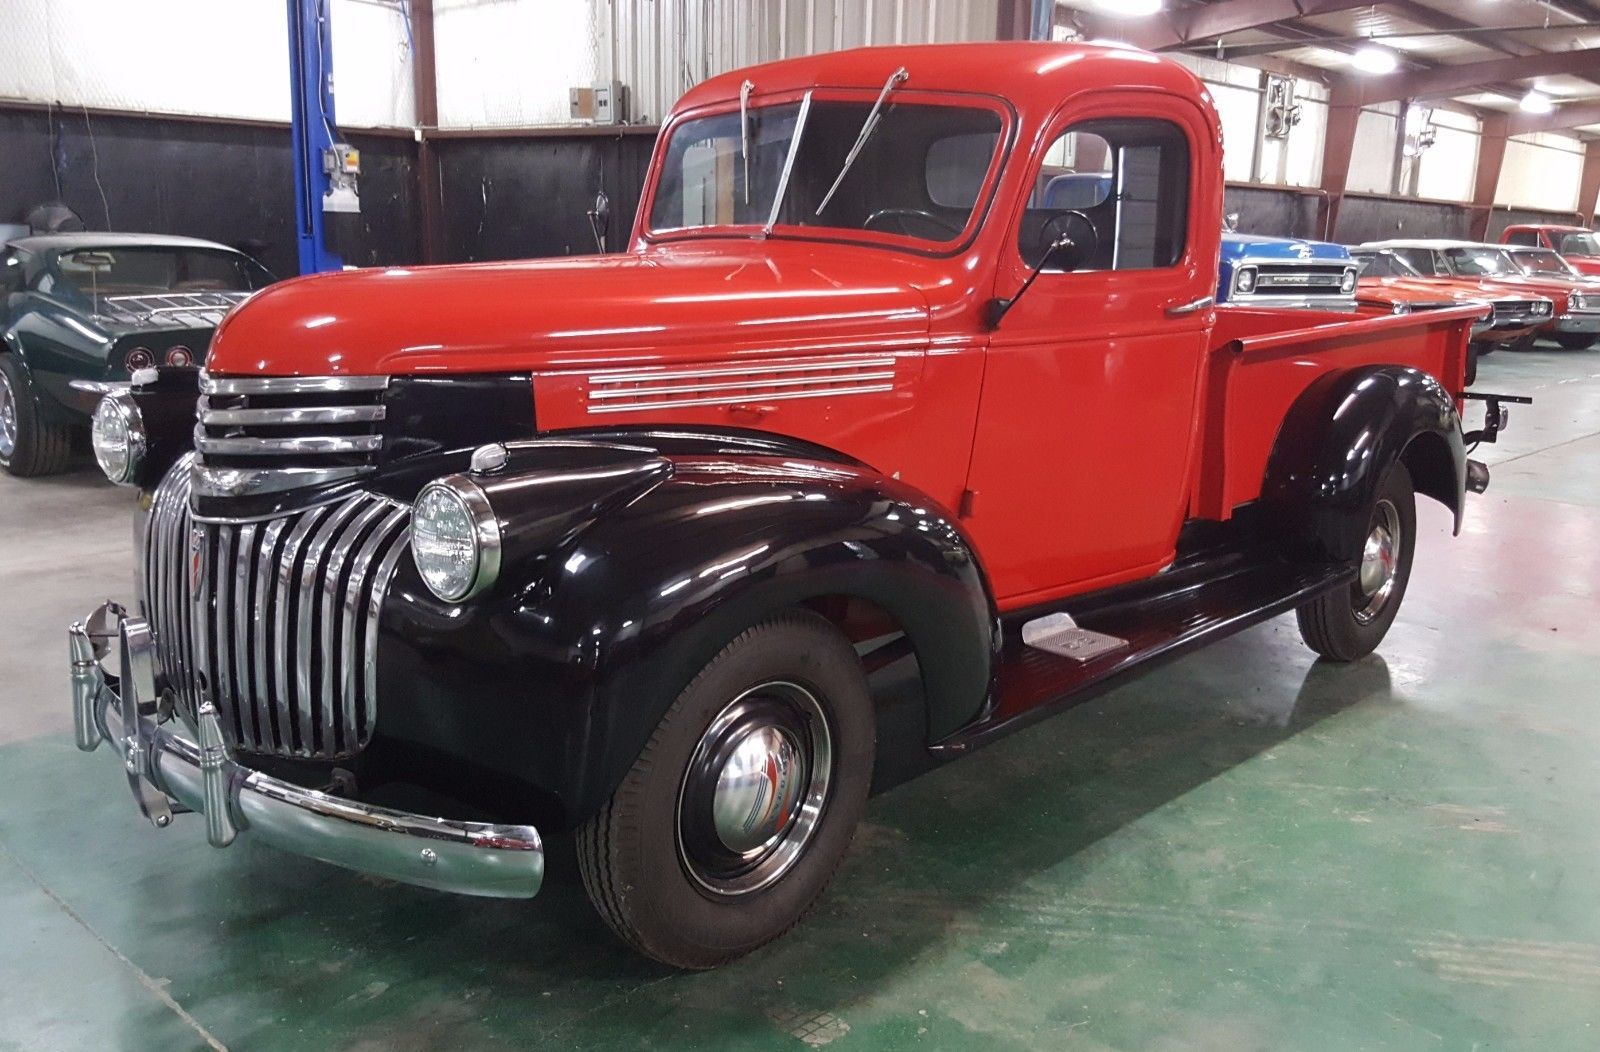 Enchanting Where To Buy Old Trucks Crest - Classic Cars Ideas - boiq ...